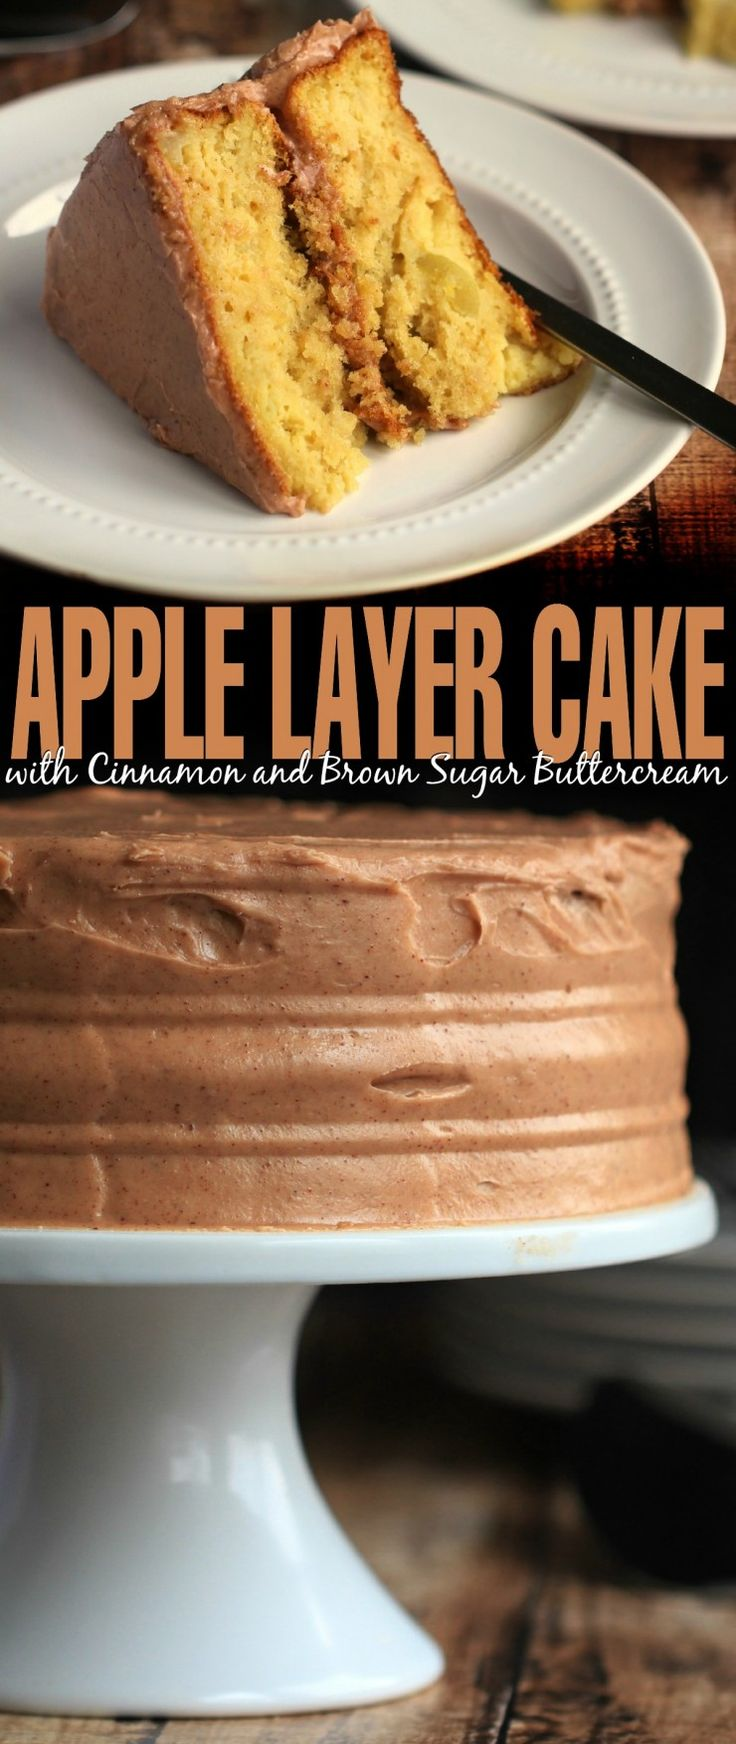 This Apple Layer Cake with Cinnamon and Brown Sugar Buttercream recipe makes a deliciously sweet and spiced dessert.